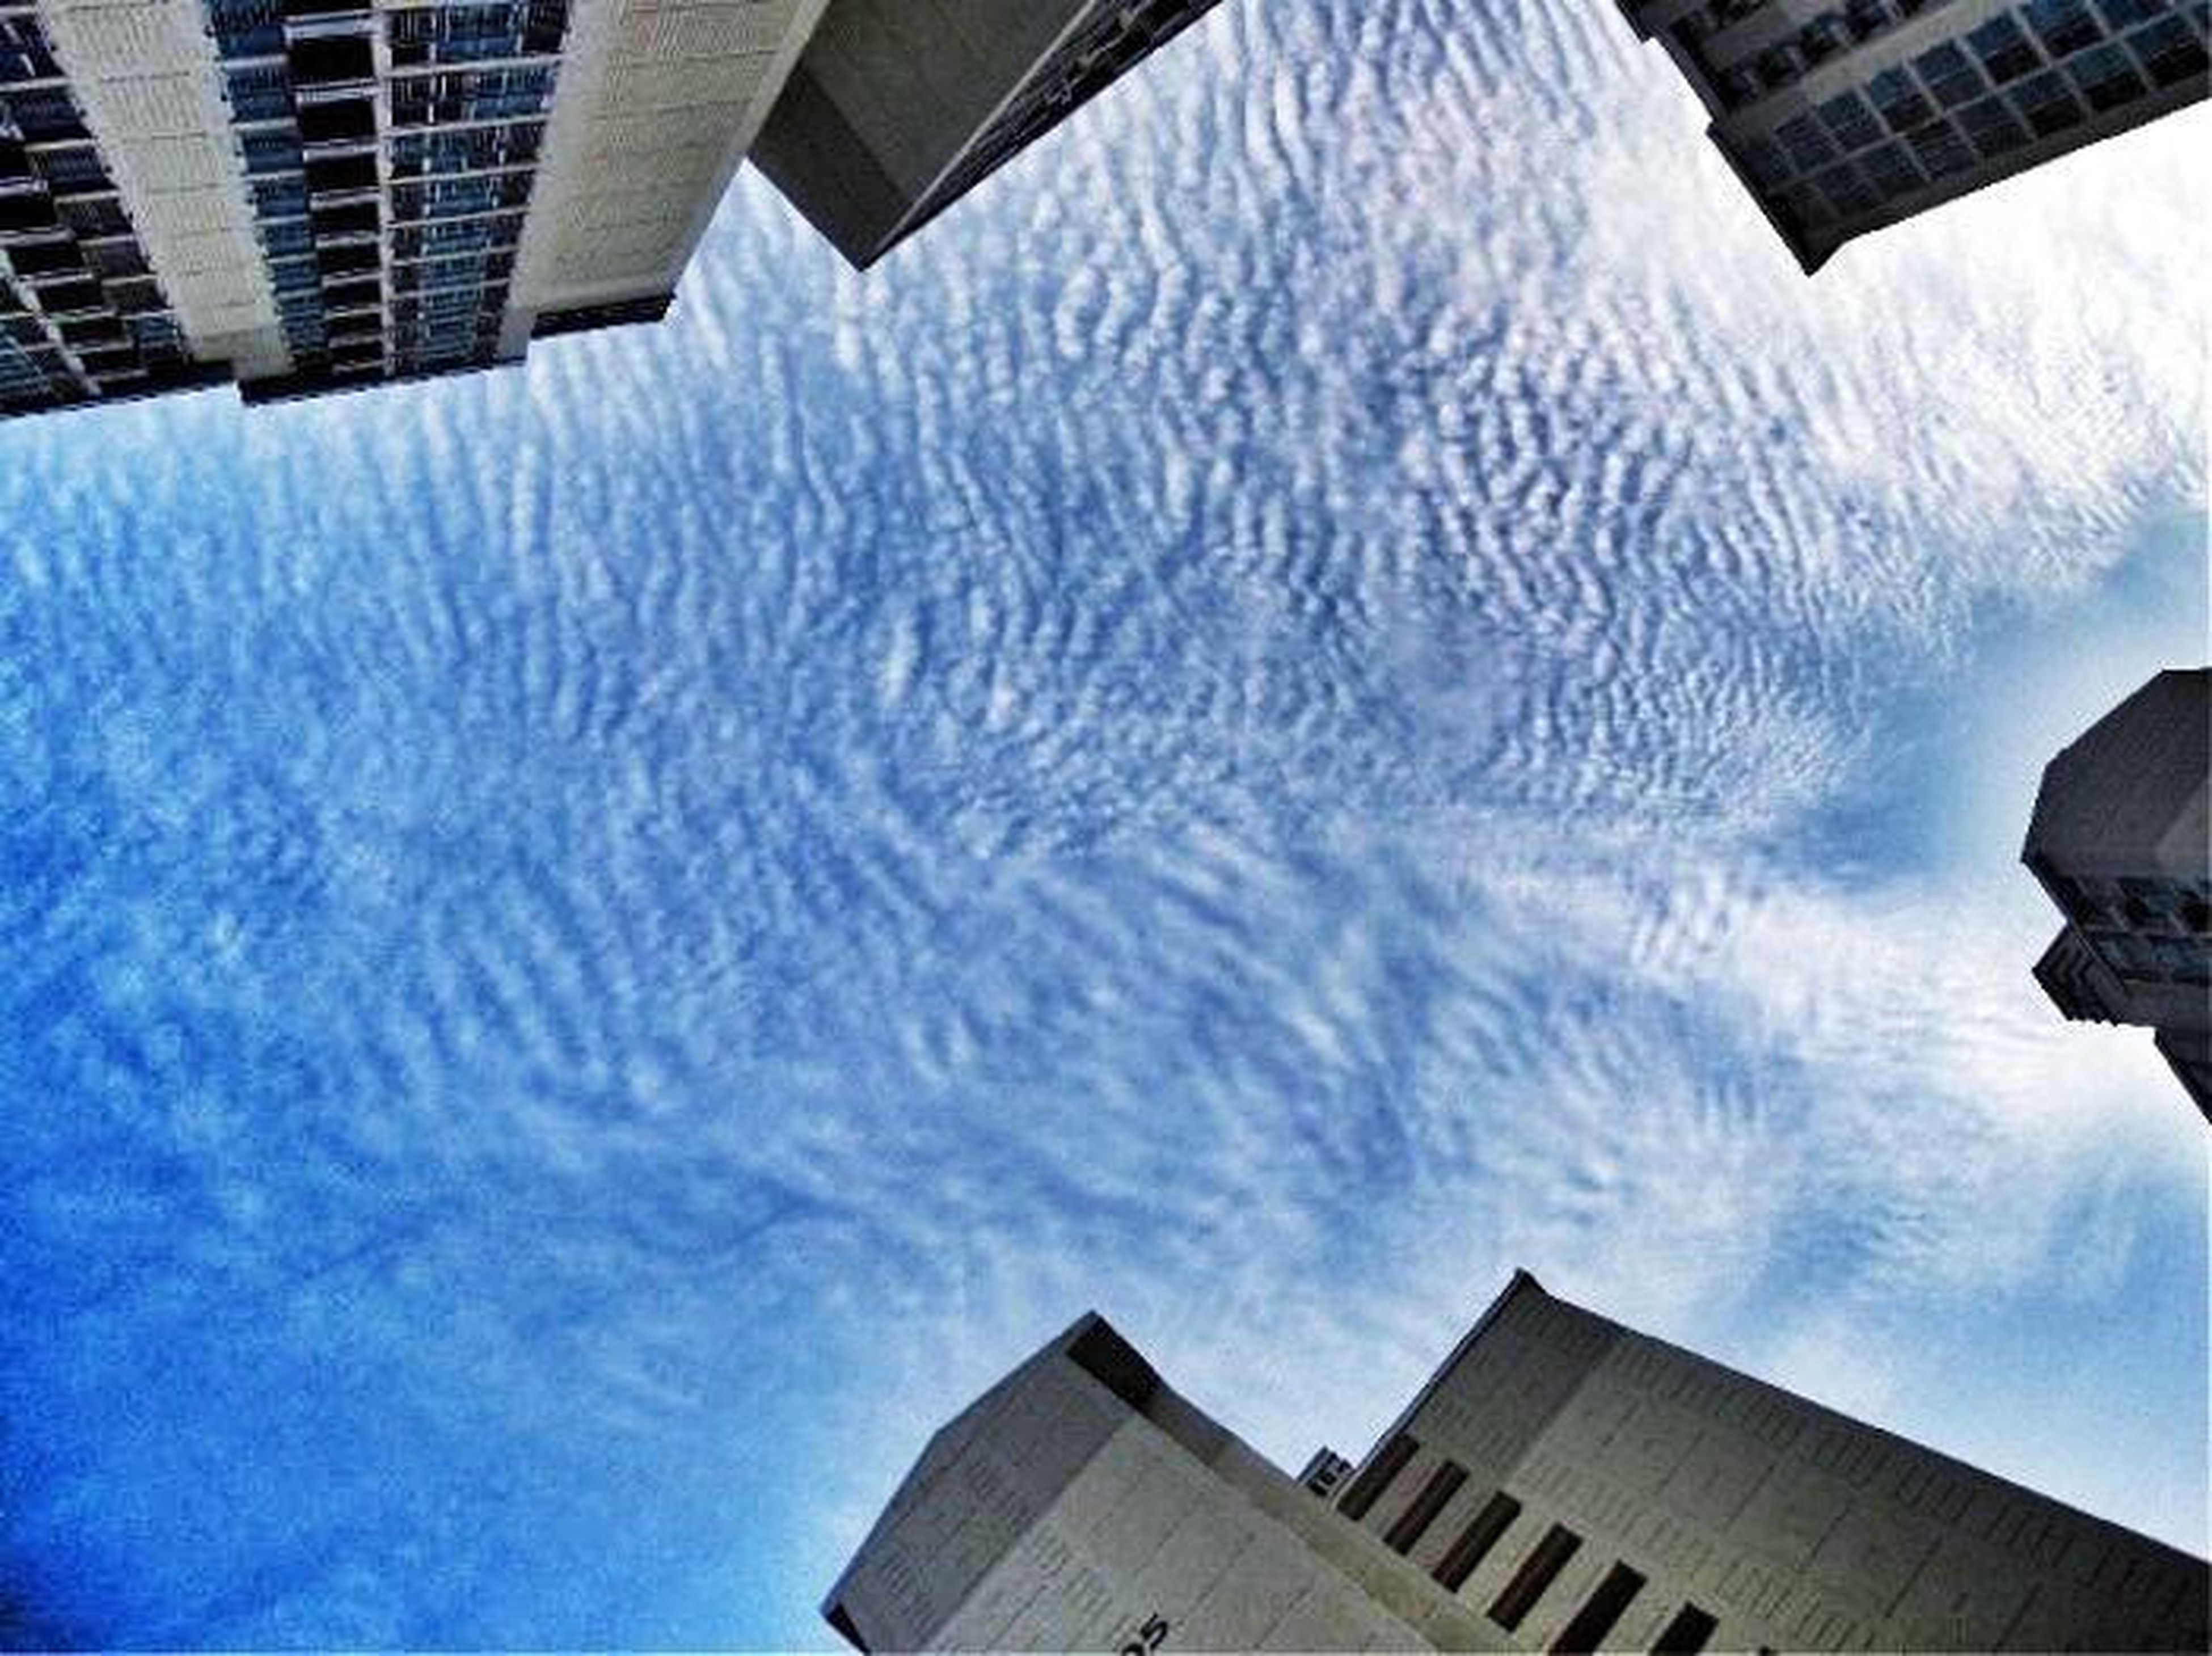 building exterior, architecture, built structure, sky, low angle view, city, building, reflection, blue, cloud - sky, modern, day, tower, outdoors, residential building, residential structure, office building, no people, water, skyscraper